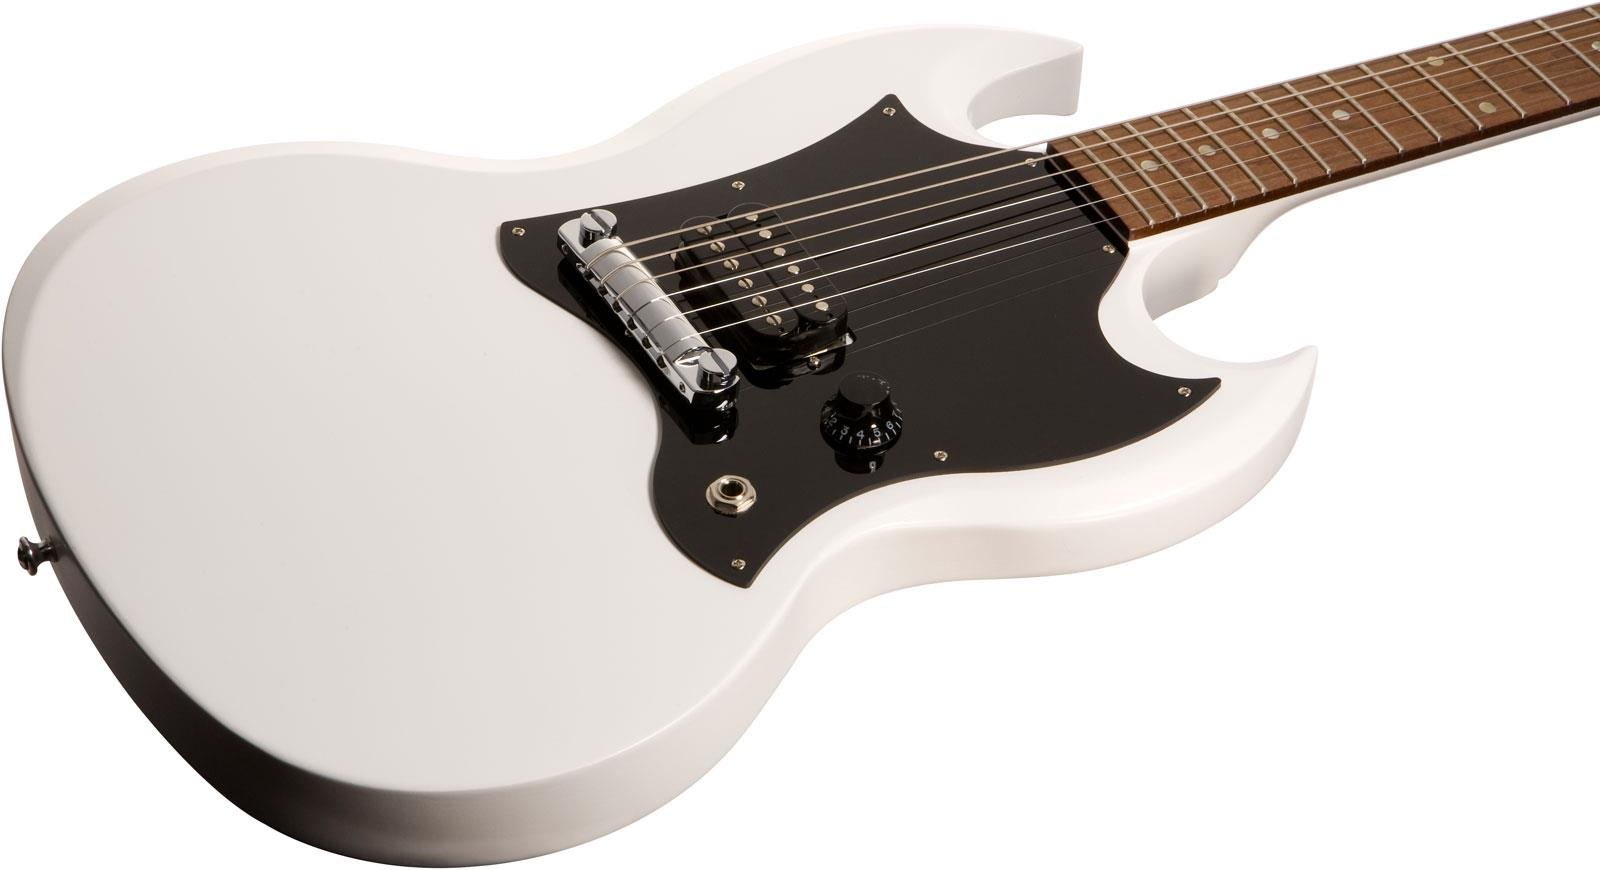 Gibson Melody Maker SG Satin White